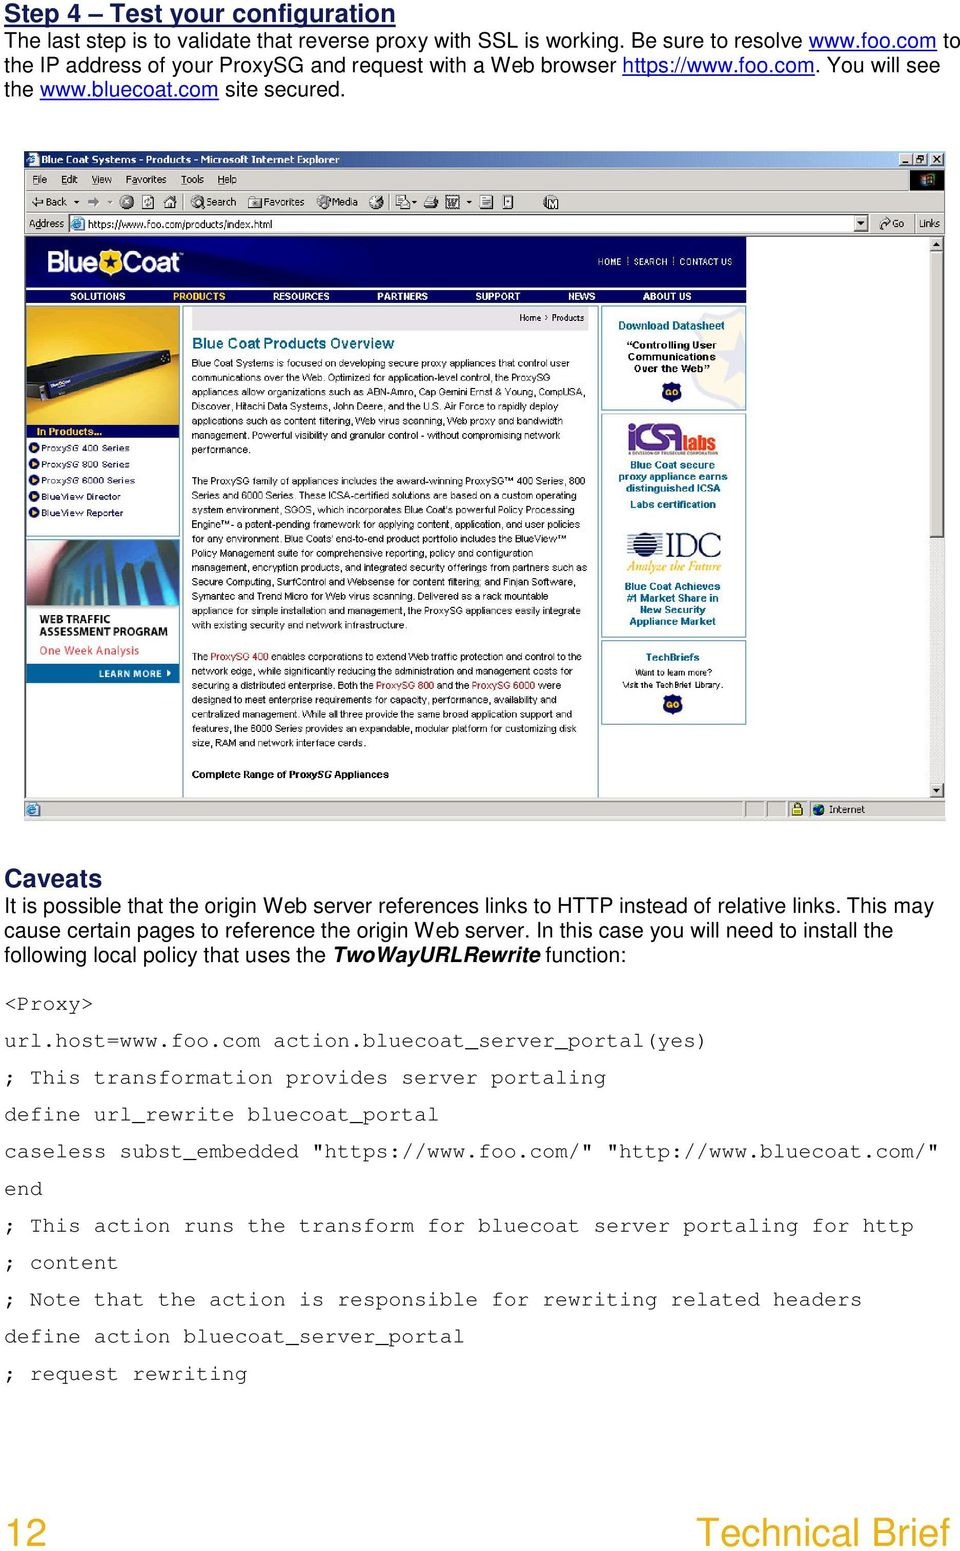 Caveats It is possible that the origin Web server references links to HTTP instead of relative links. This may cause certain pages to reference the origin Web server.